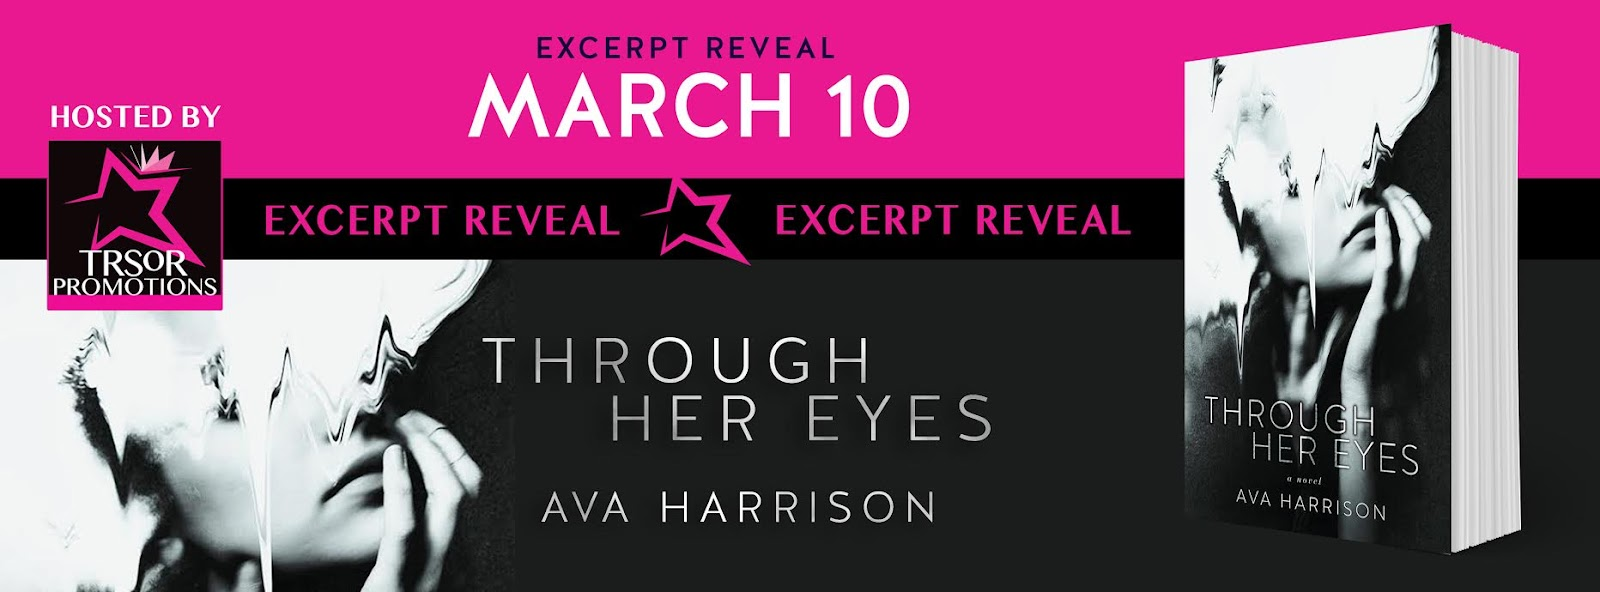 through her eyes excerpt reveal.jpg